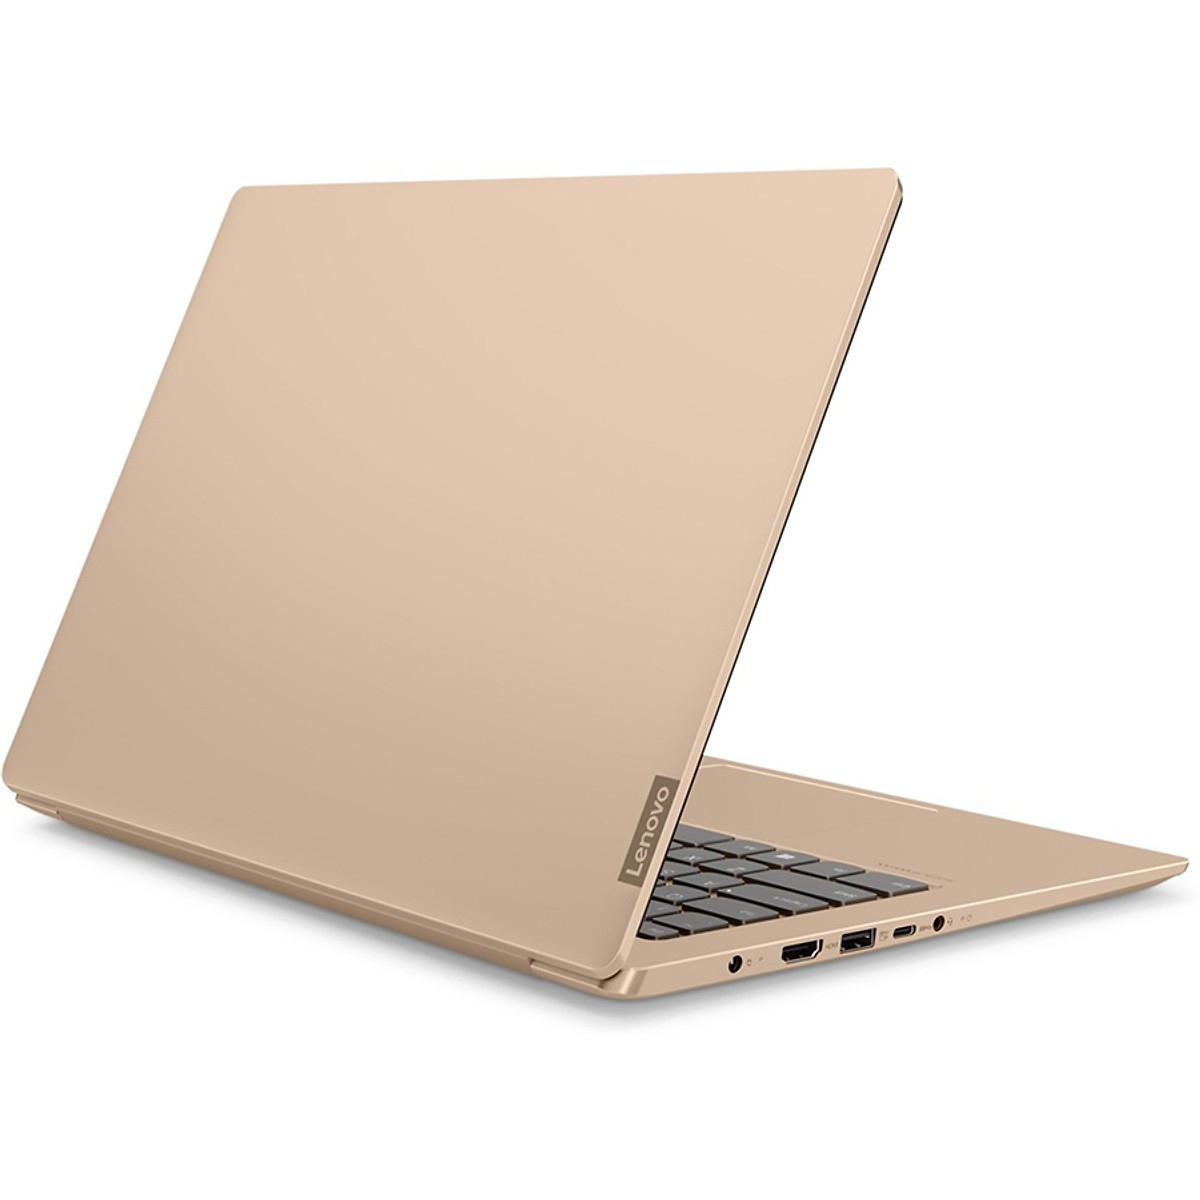 Laptop Lenovo IDEA PAD 520-5 14IKBR